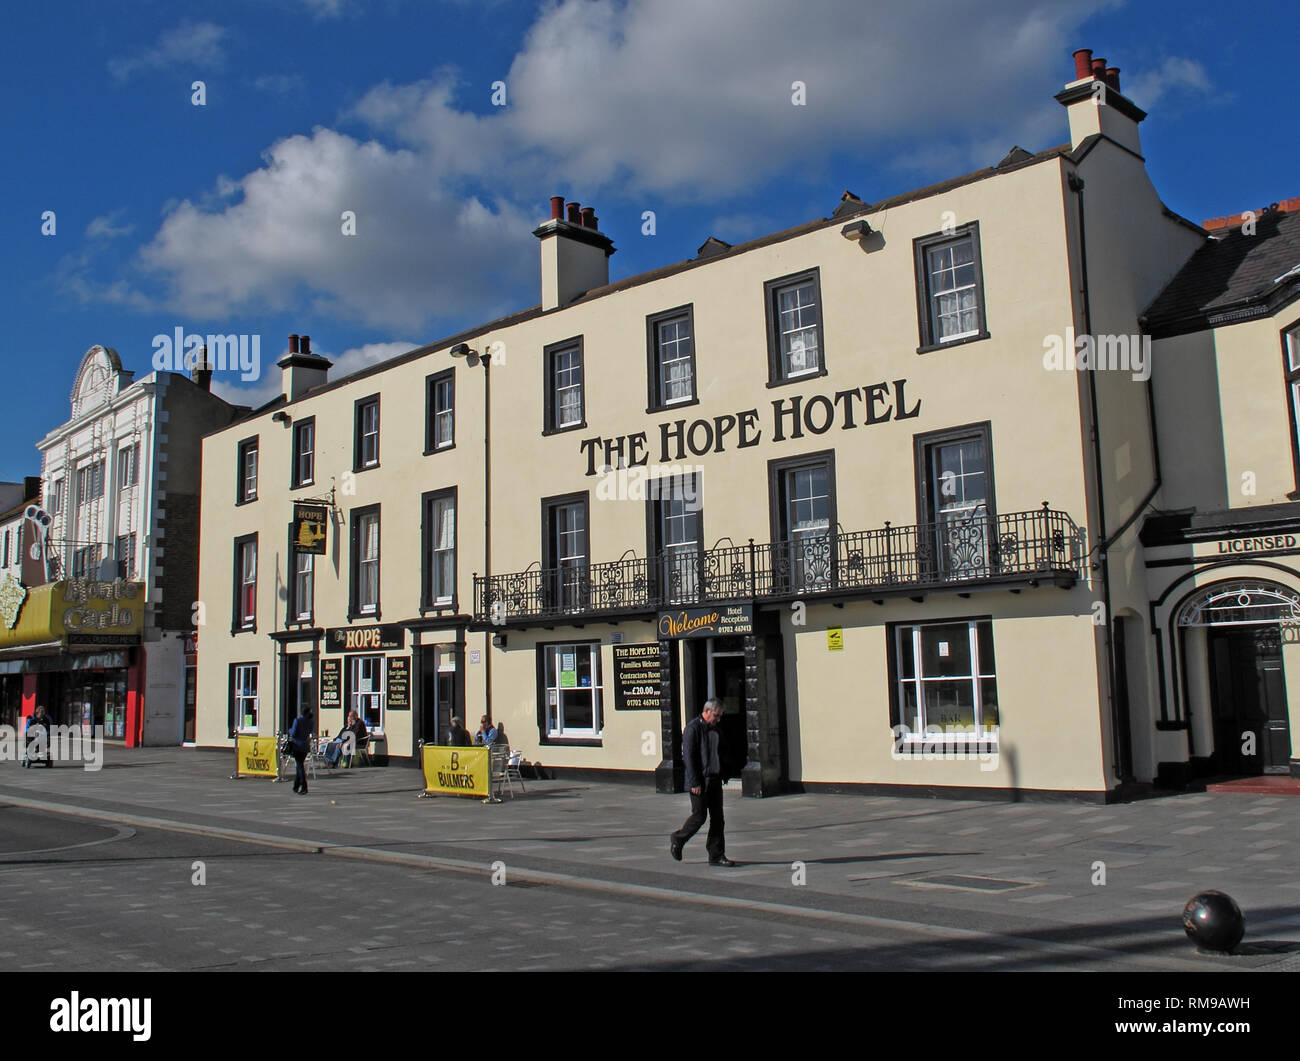 The Hope Hotel pub, Southend on sea, 34 Marine Parade, Southend-on-Sea SS1 2EJ - Stock Image